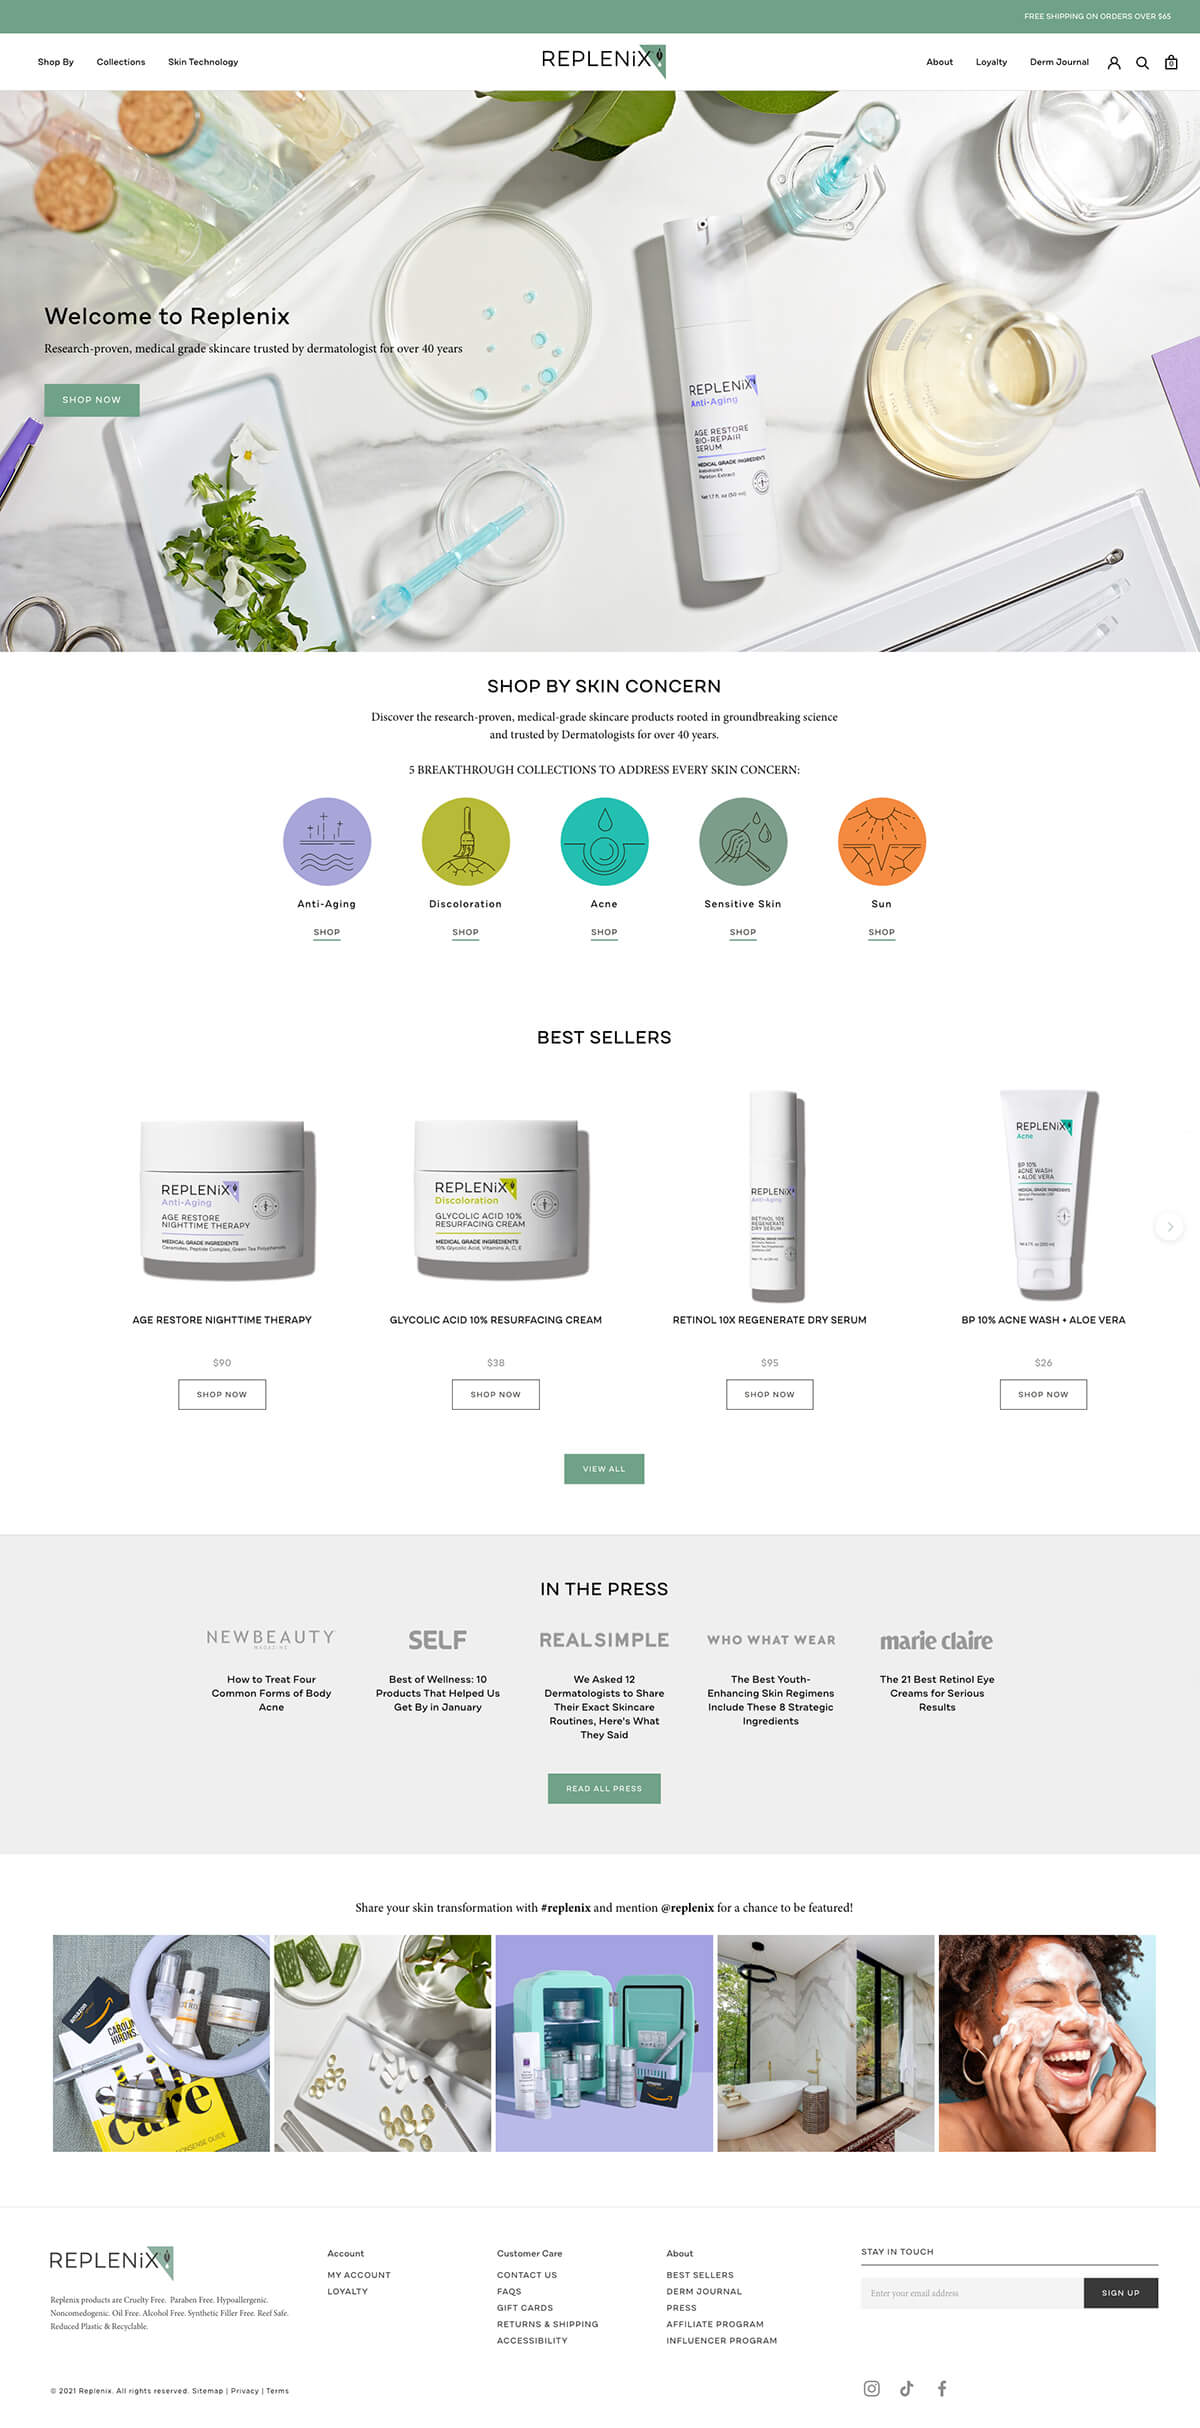 Thumbnail for Shopify site for skincare brand